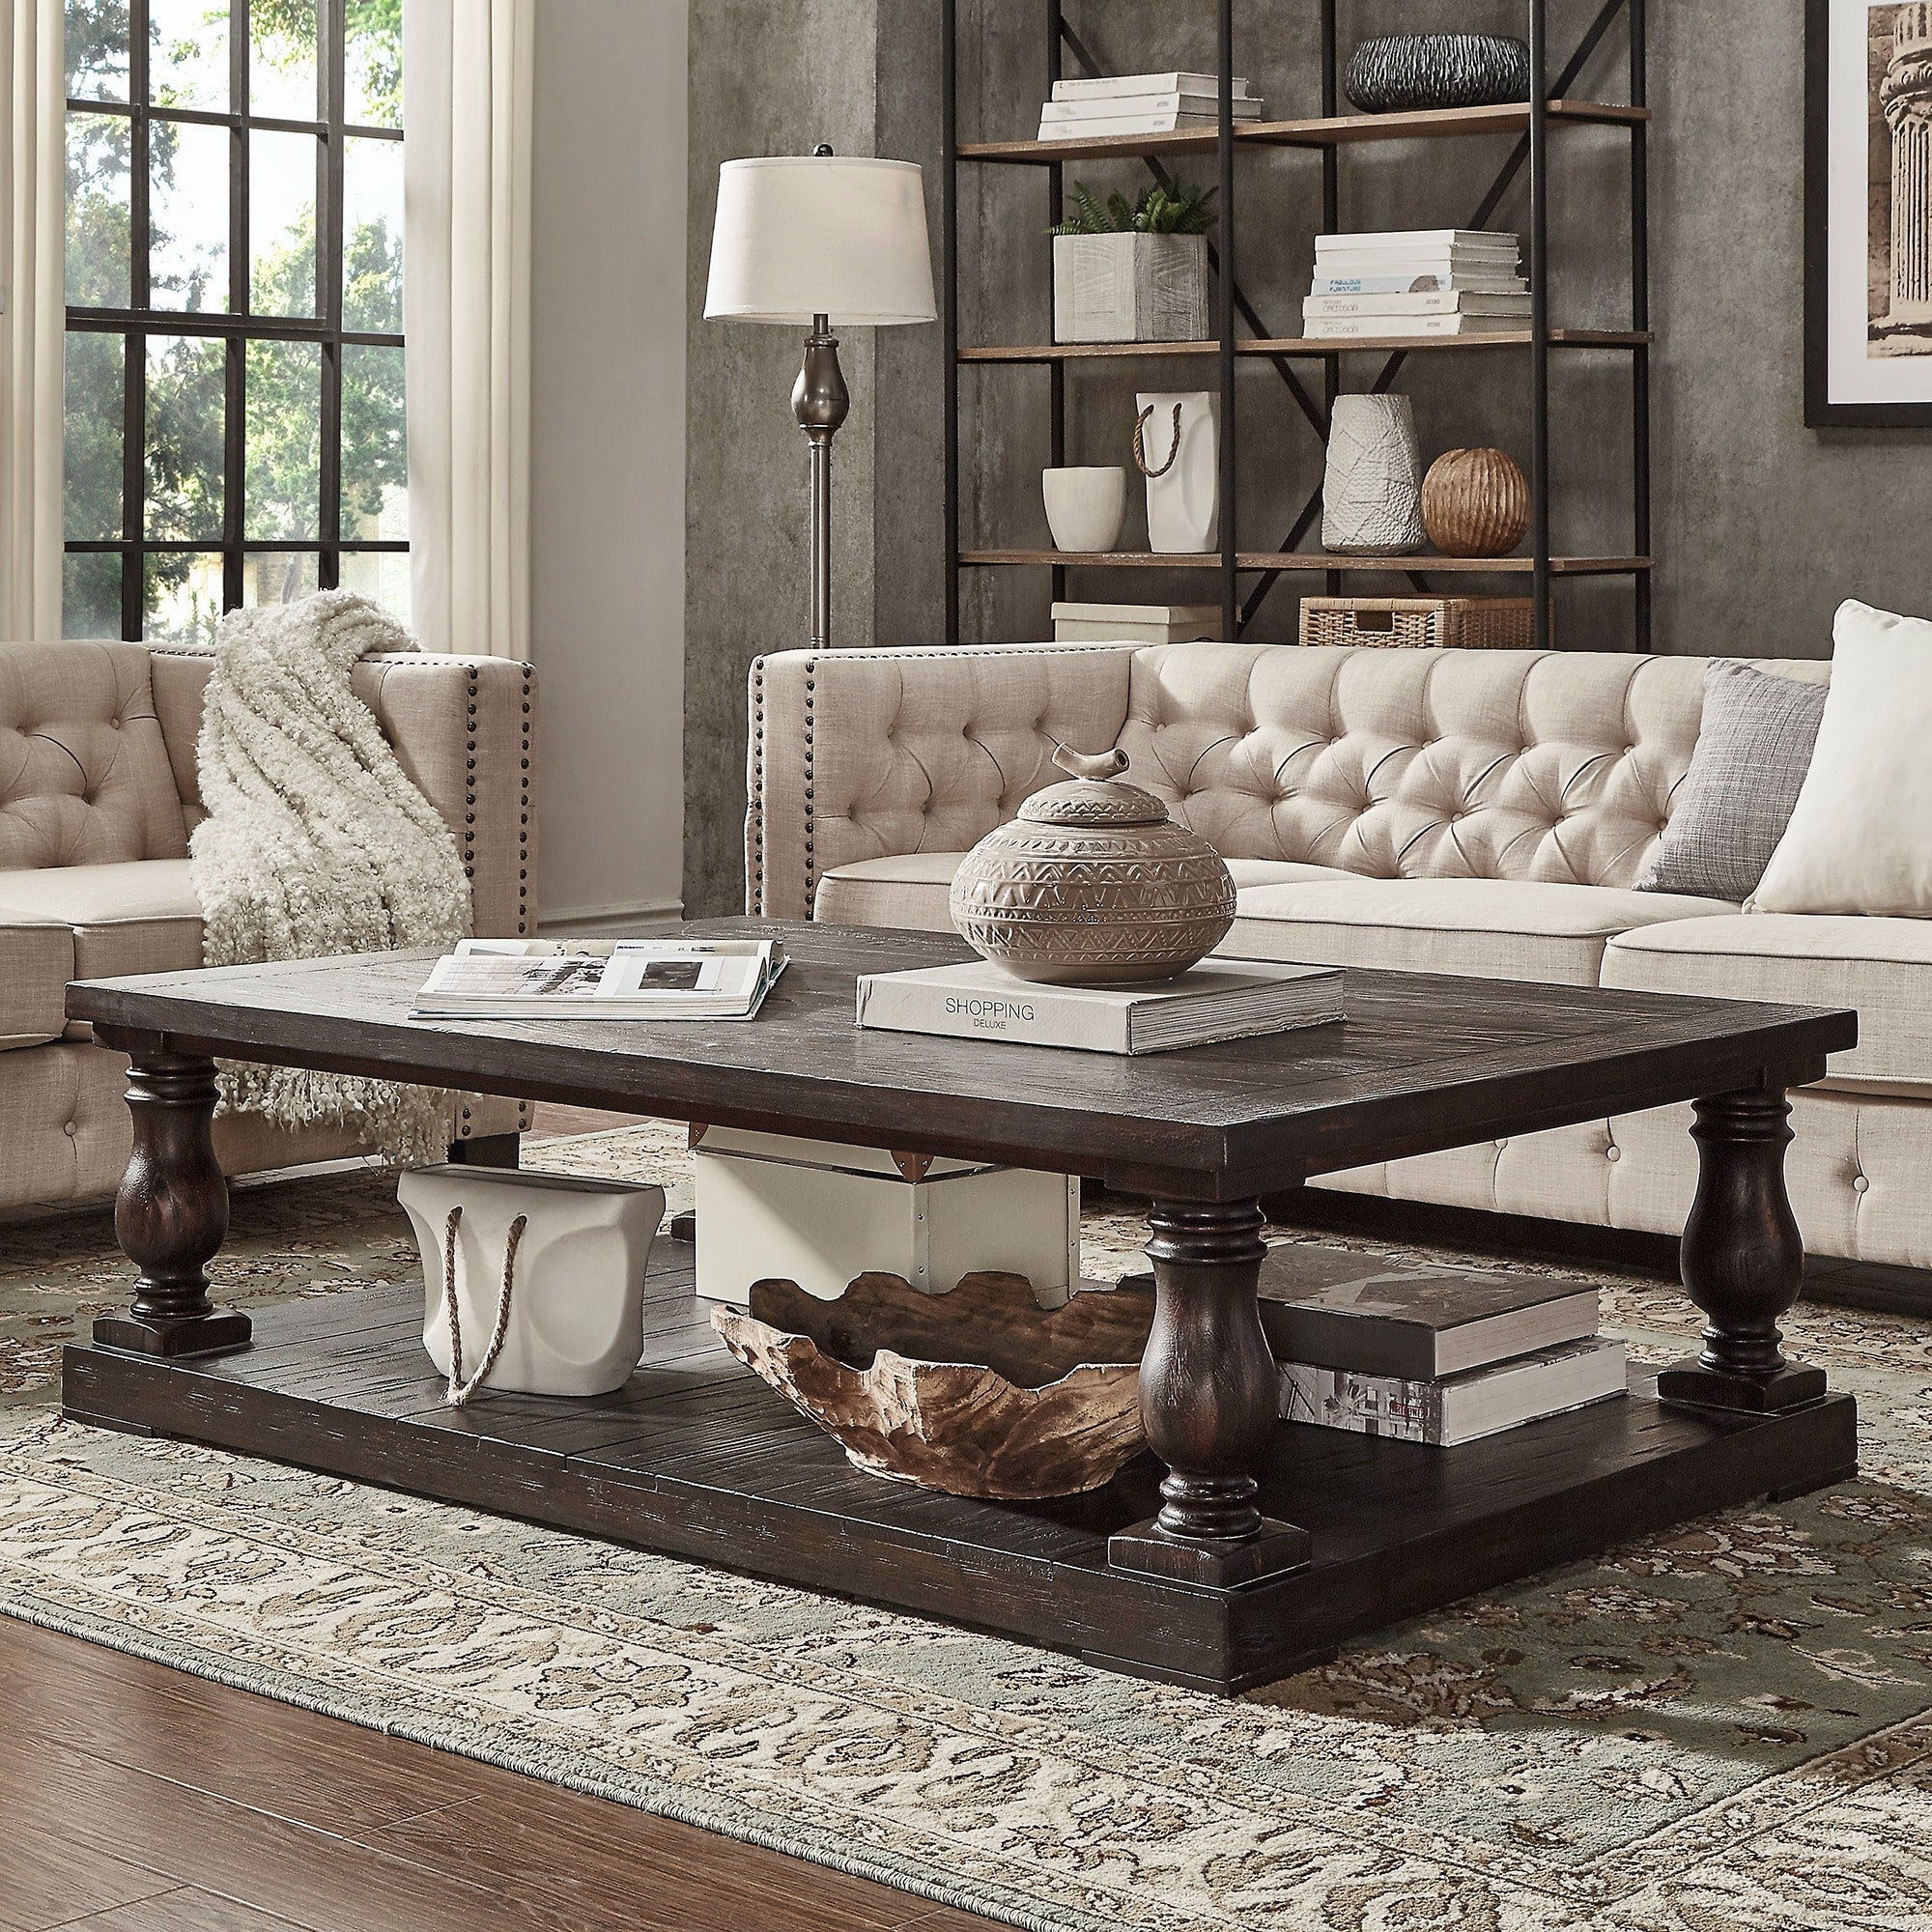 iNSPIRE Q Edmaire Rustic Baluster 60 inch Coffee Table by Artisan